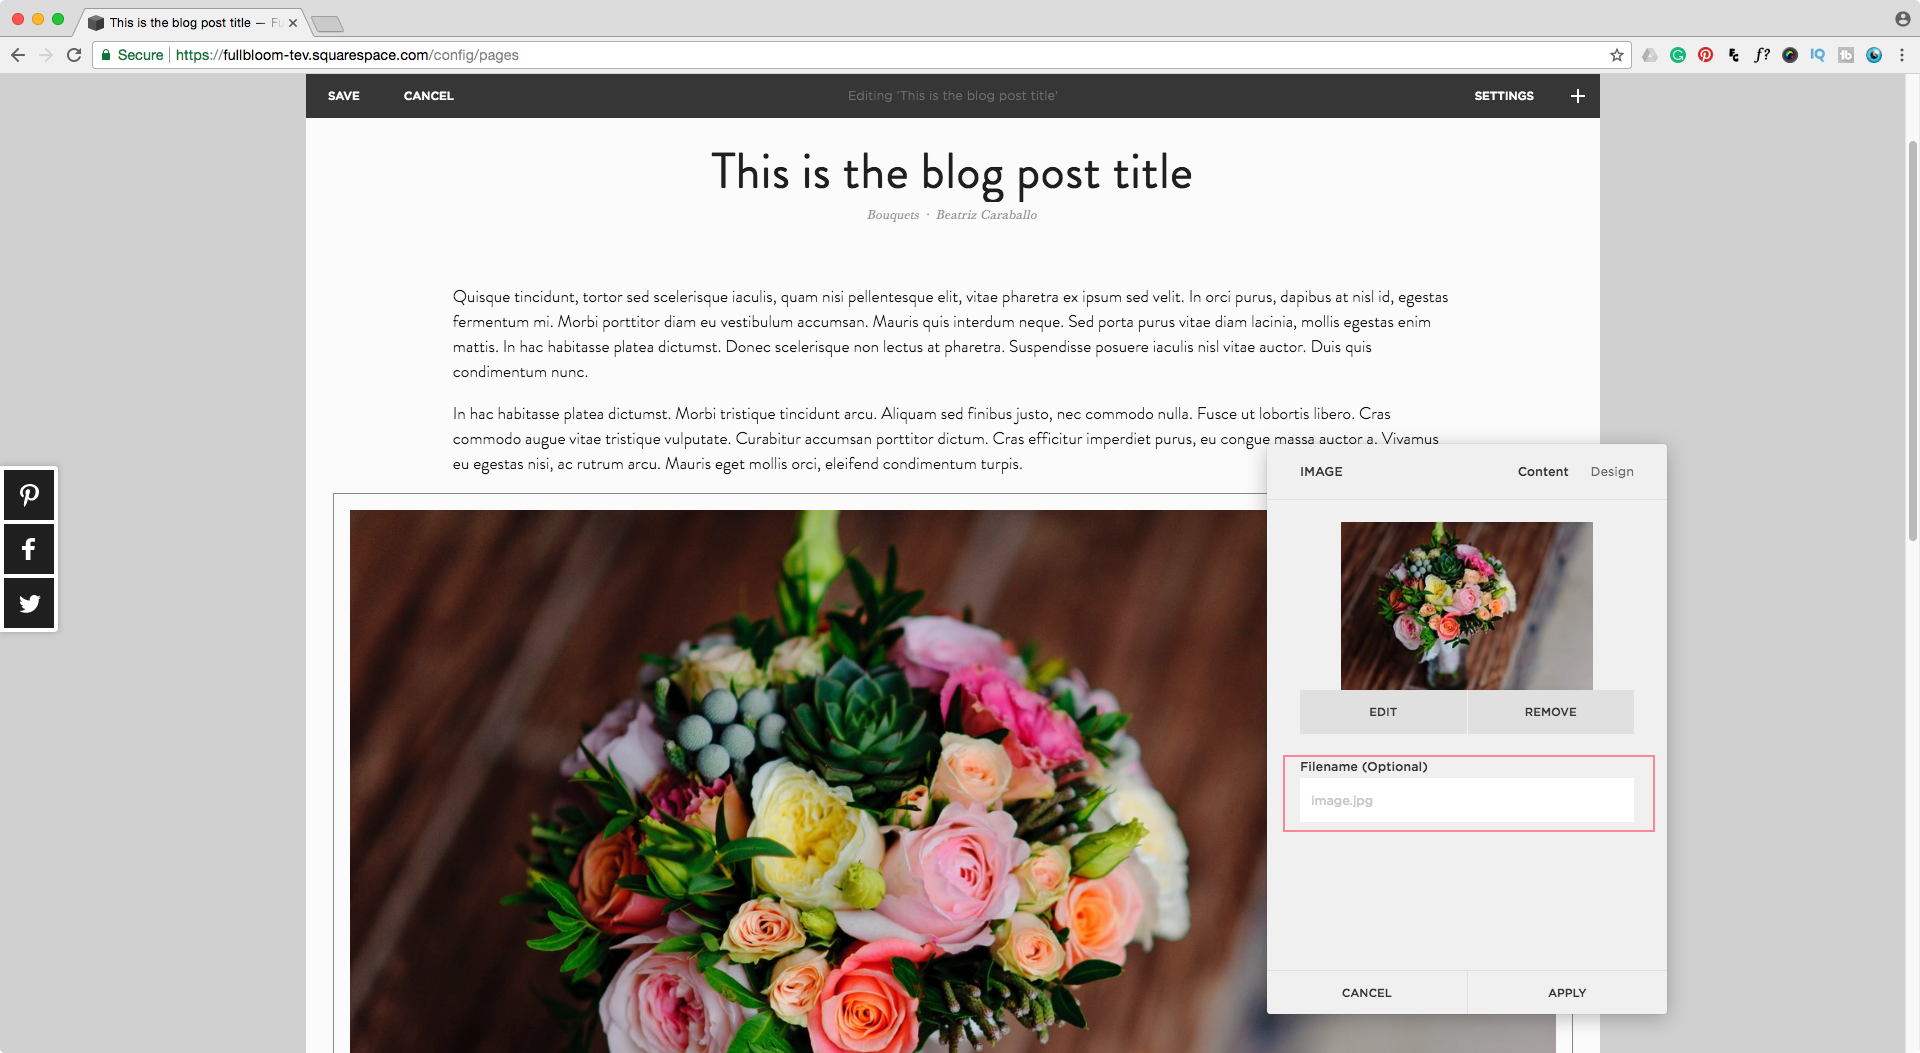 Adding an optional image filename in Squarespace